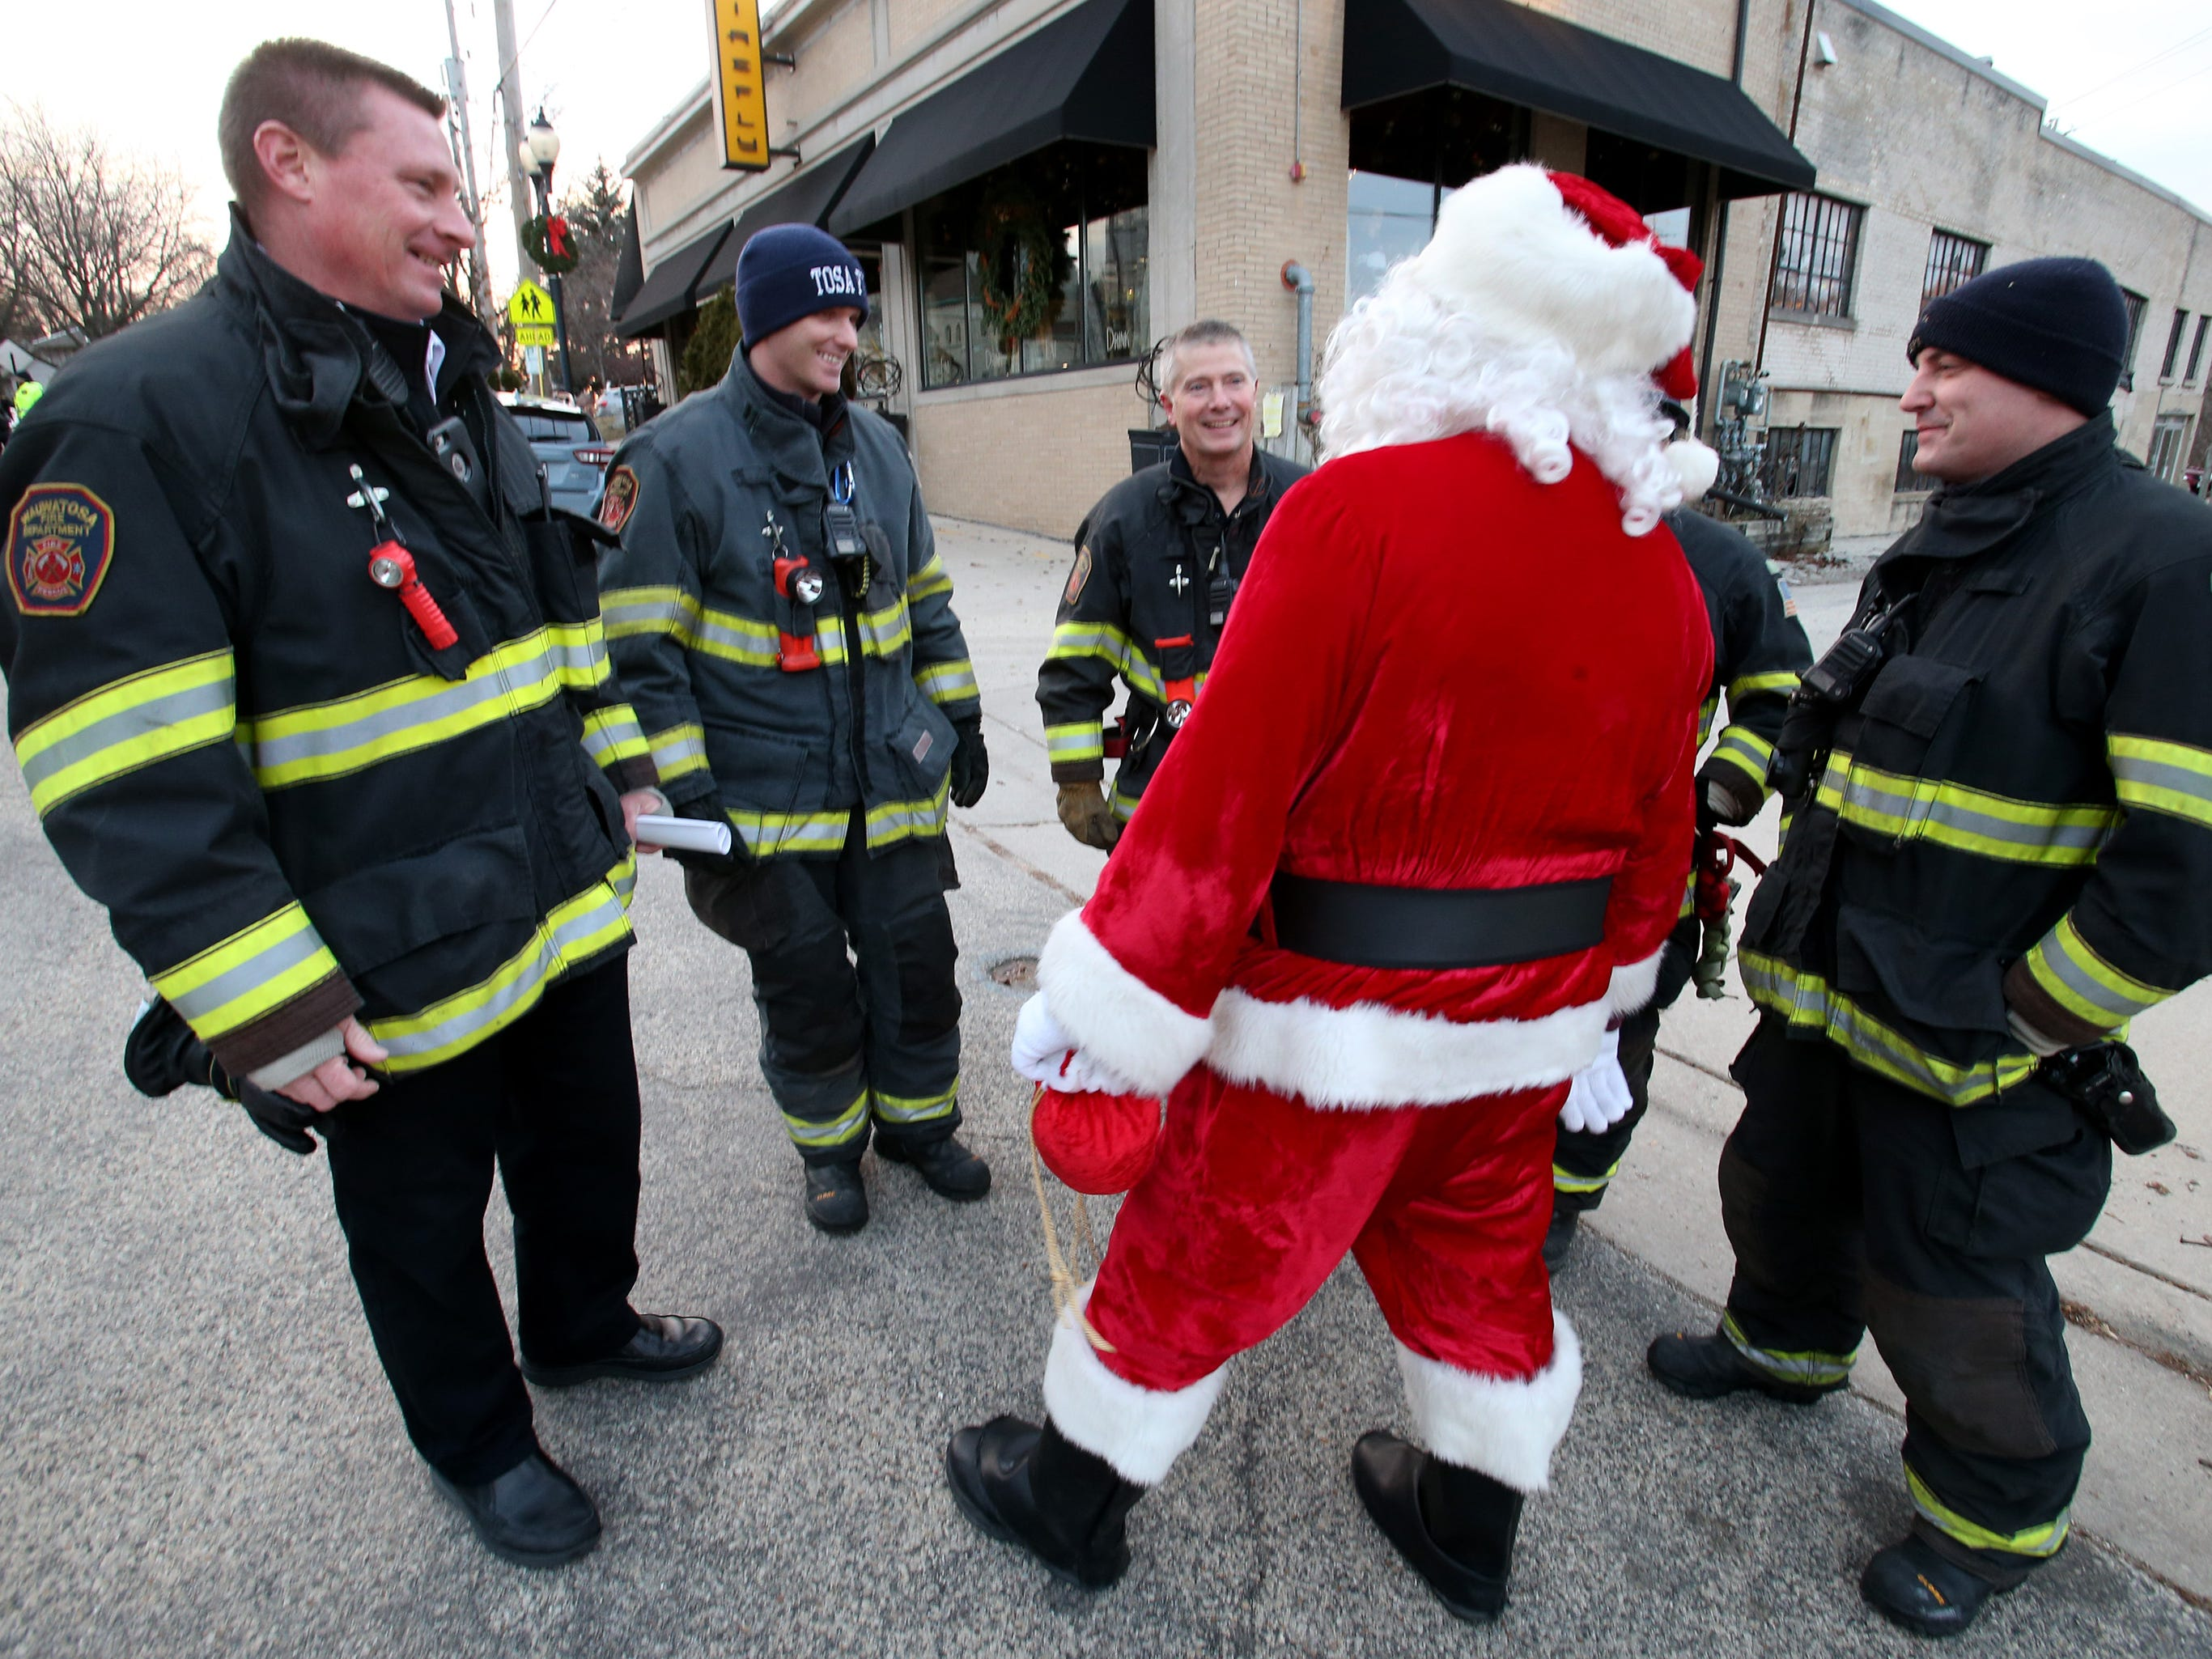 Santa stops to talk with a group of Wauwatosa Fire Department firefighters on duty at the Canadian Pacific Holiday Train stop in downtown Wauwatosa on Dec. 7.